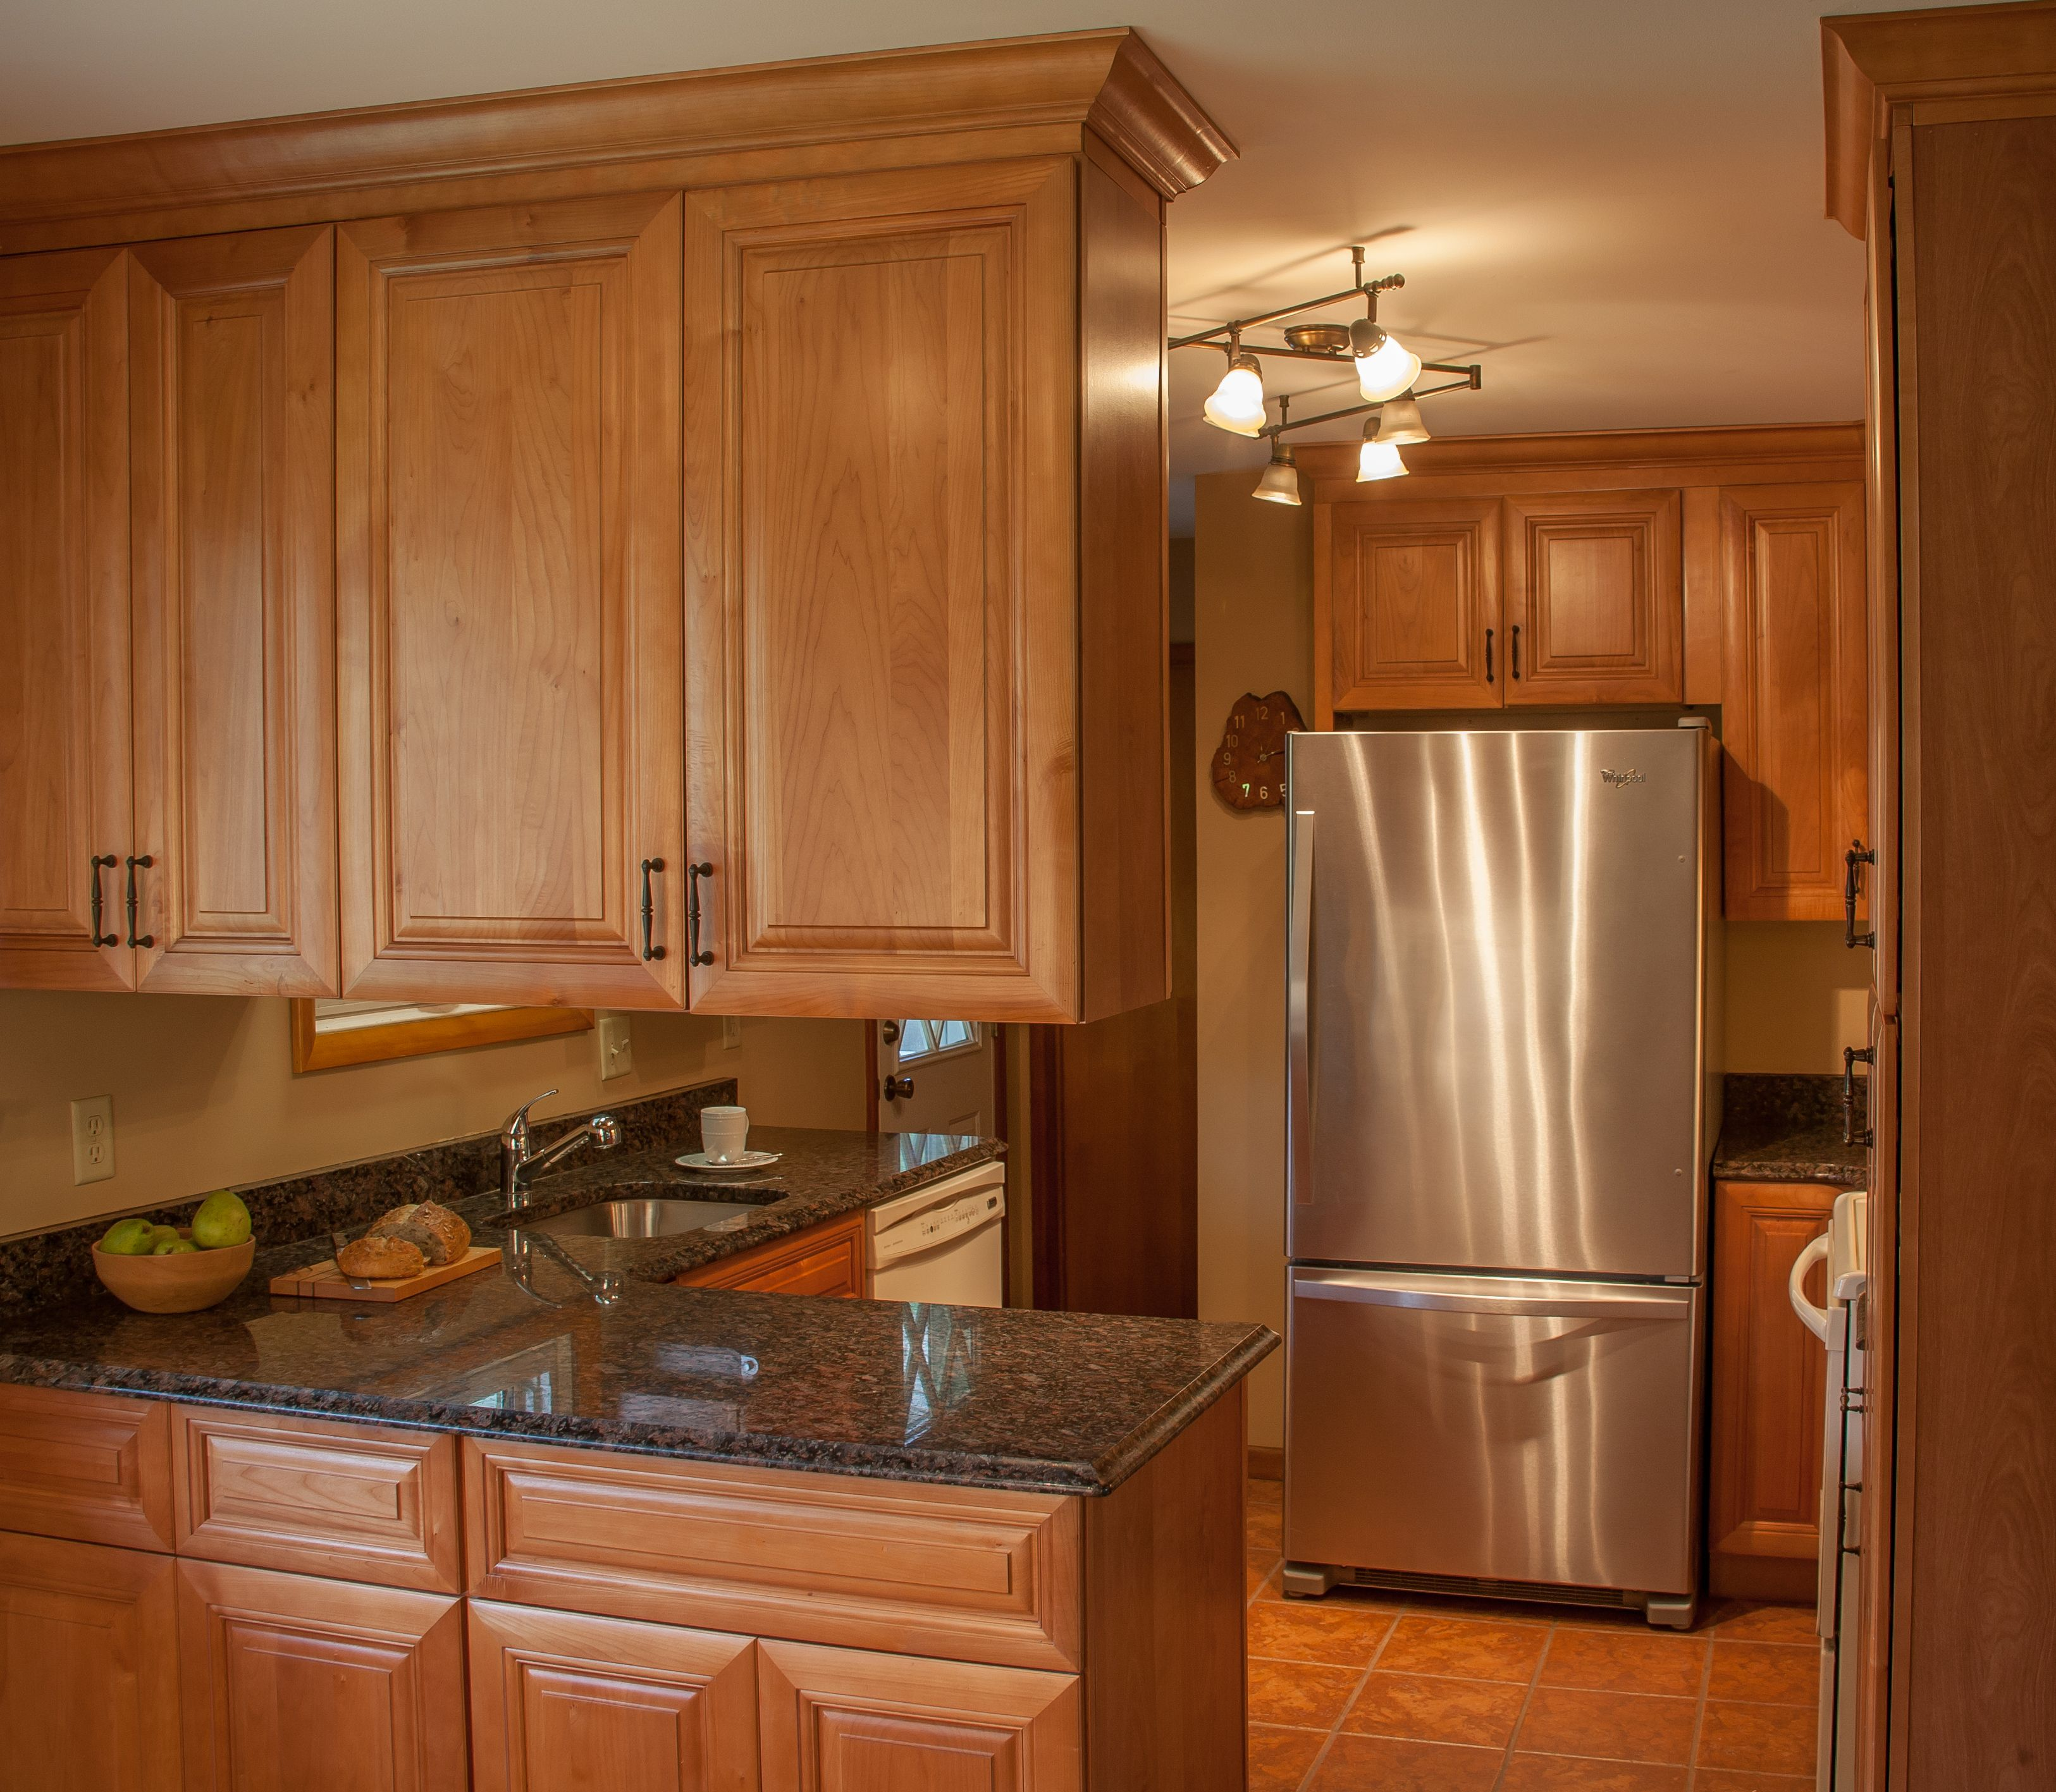 Best Coffee Brown Granite And Allwood Cabinets Kitchen Design 400 x 300